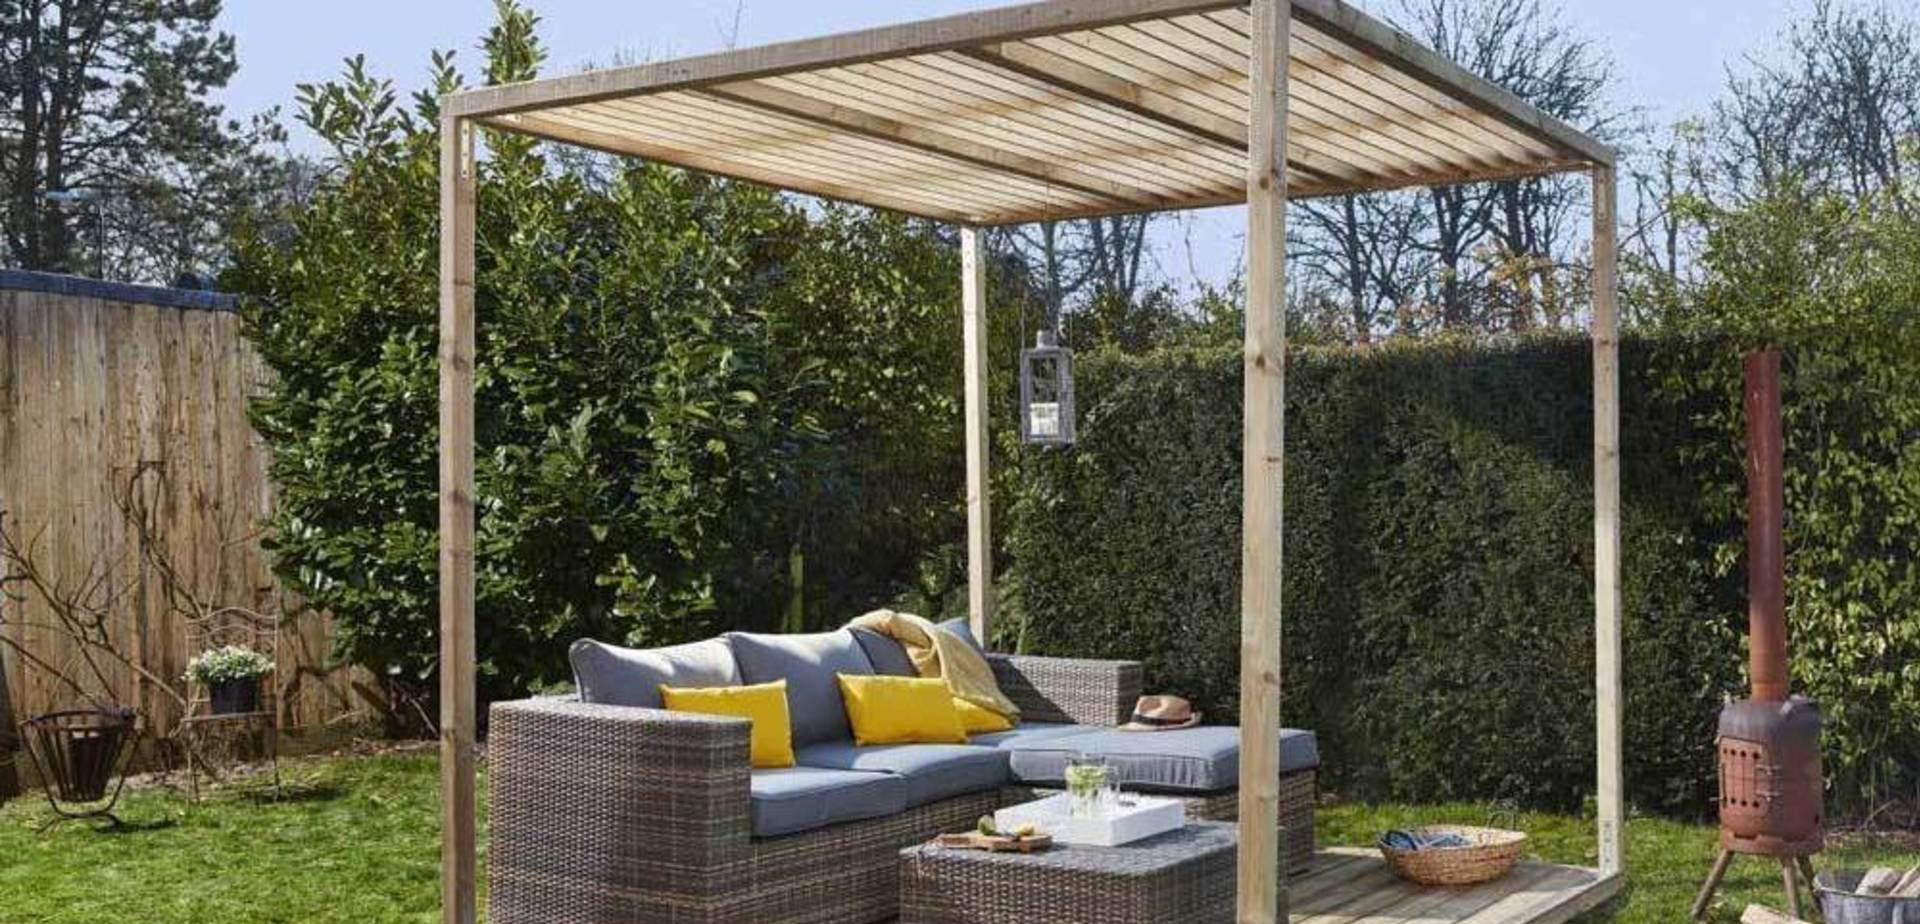 construire une pergola en bois pour les makers. Black Bedroom Furniture Sets. Home Design Ideas